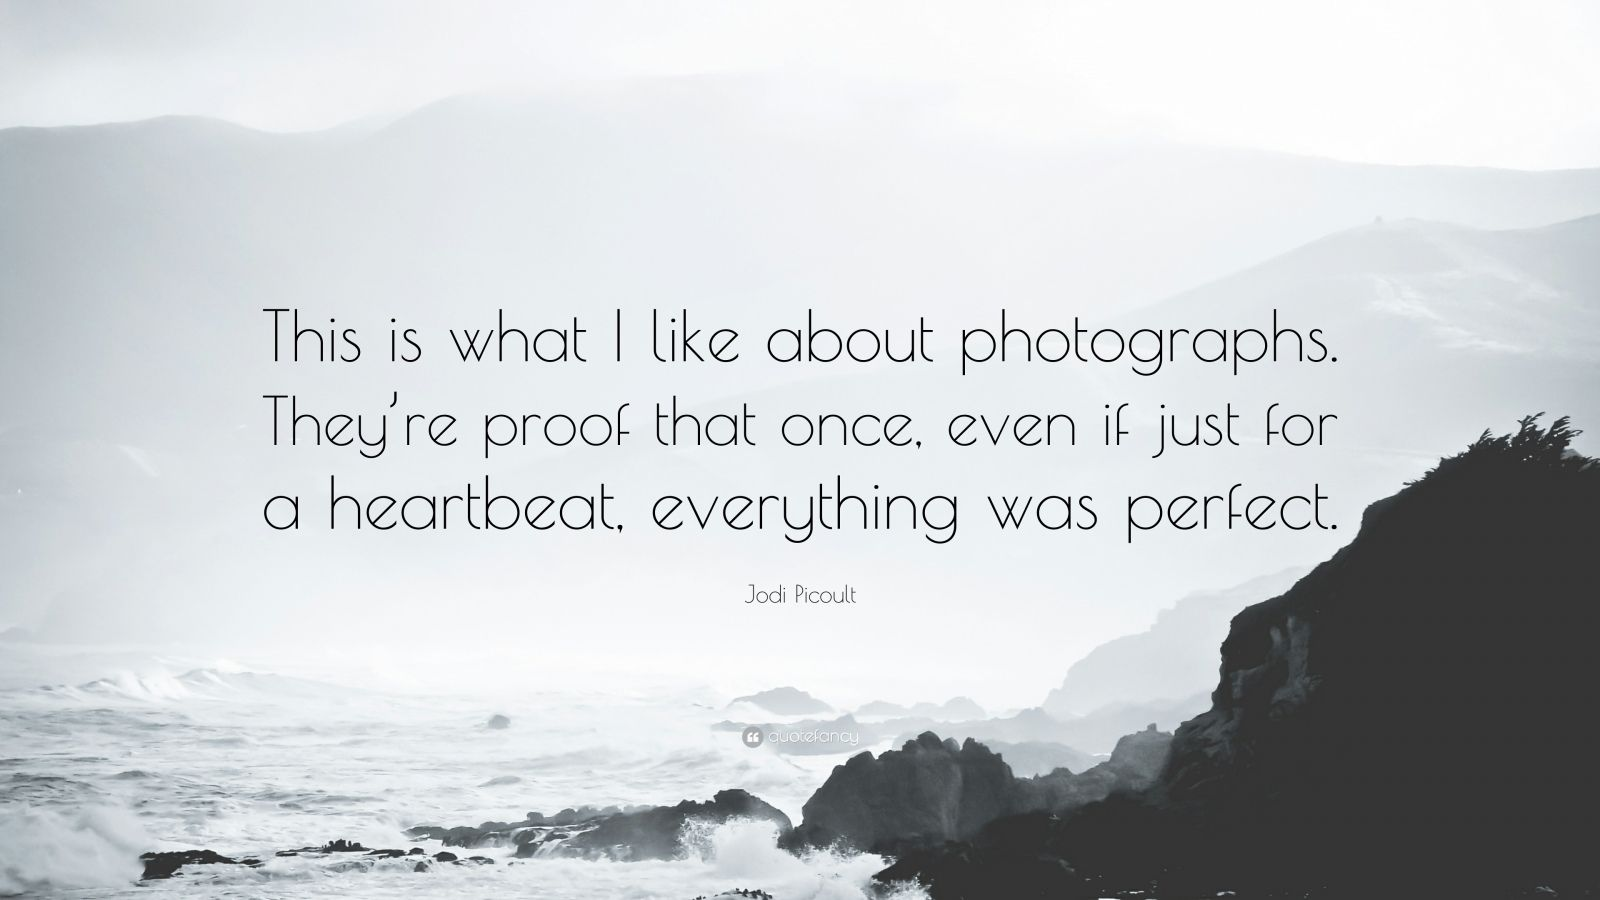 """Jodi Picoult Quote: """"This is what I like about photographs. They're proof that once, even if just for a heartbeat, everything was perfect."""""""